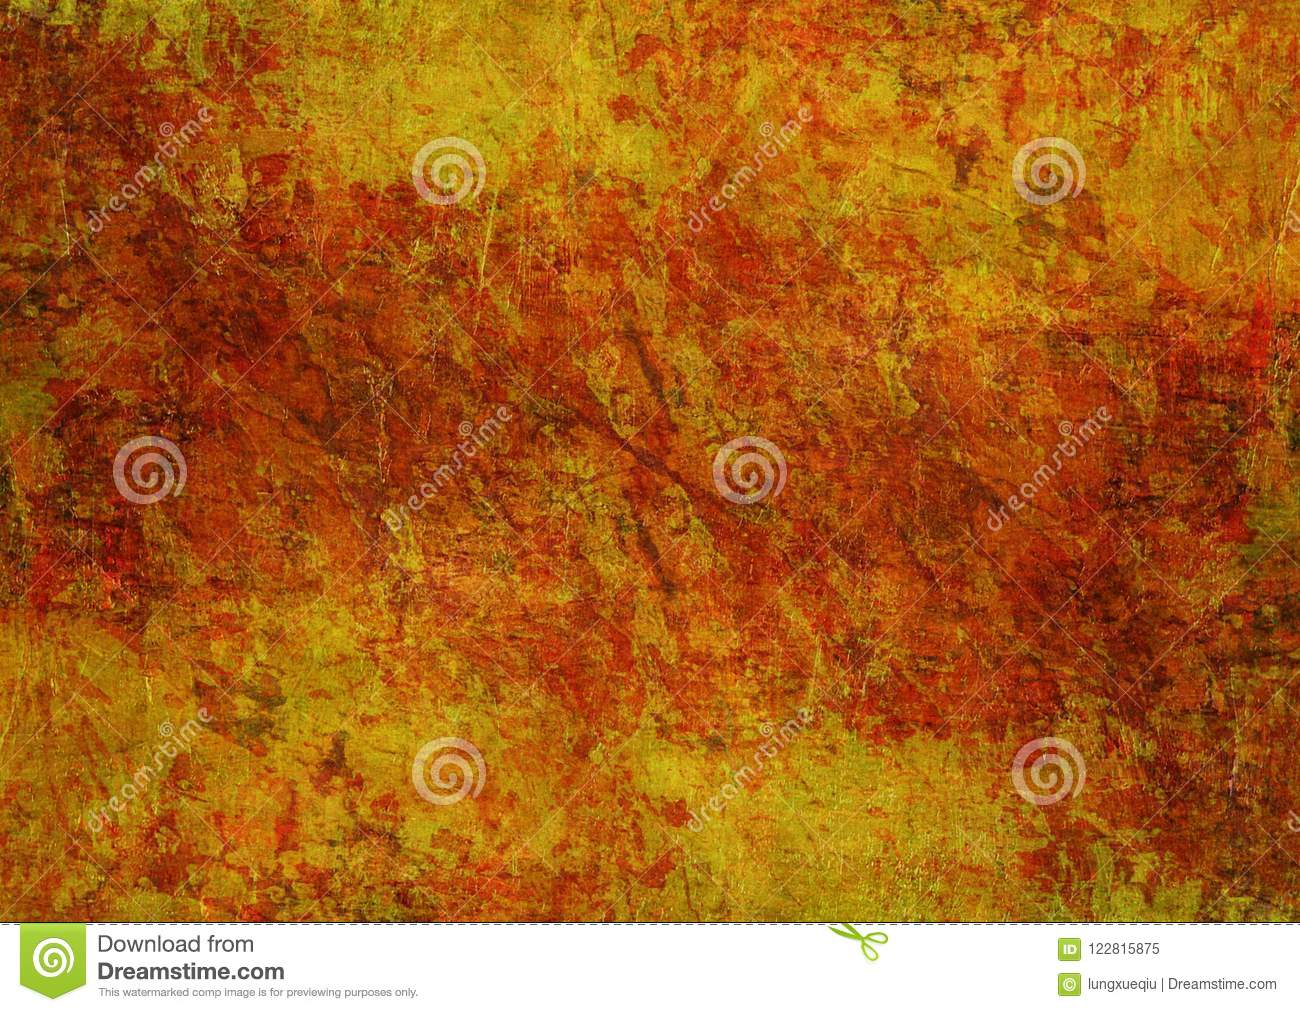 Piedras que pintan la textura oscura Autumn Background Wallpaper de Rusty Distorted Decay Old Abstract del Grunge anaranjado rojo